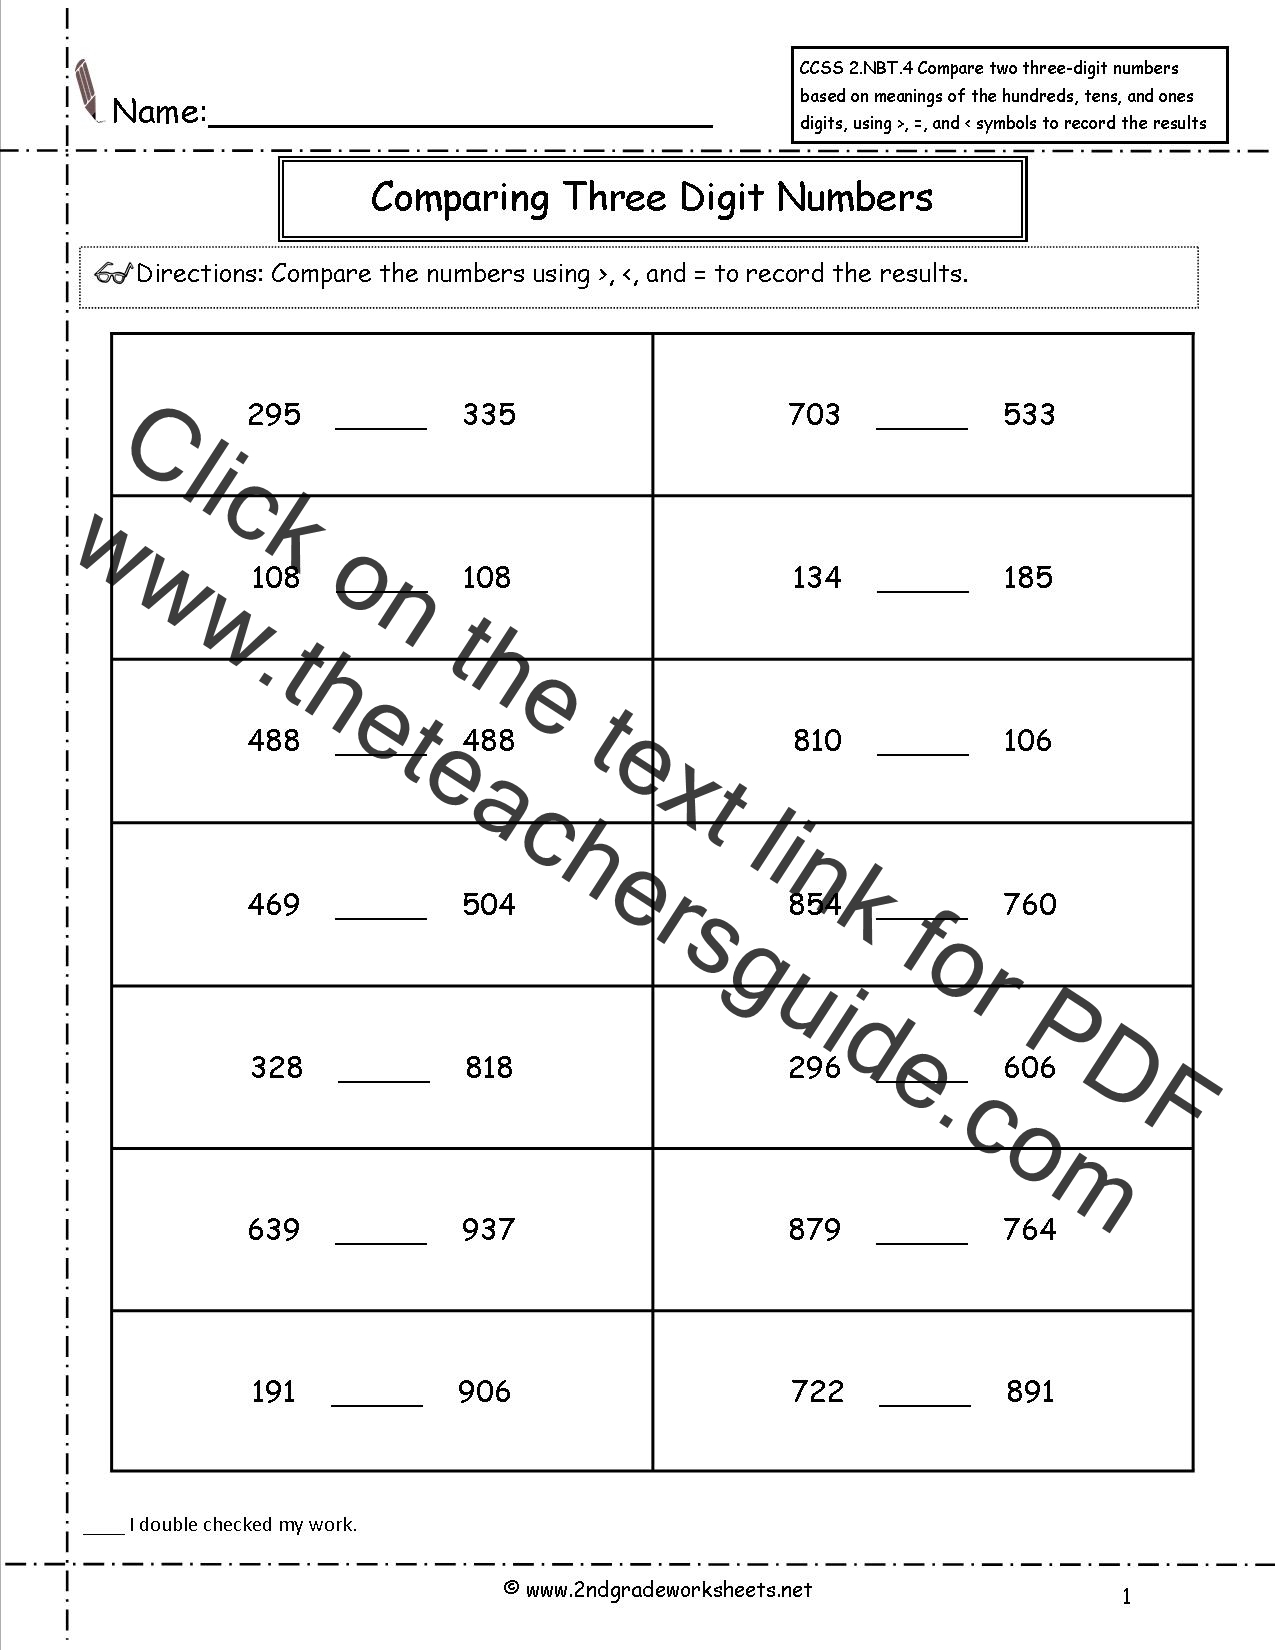 Worksheet Common Core Math Worksheets 2nd Grade 2nd grade math common core state standards worksheets ccss 2 nbt 4 worksheets